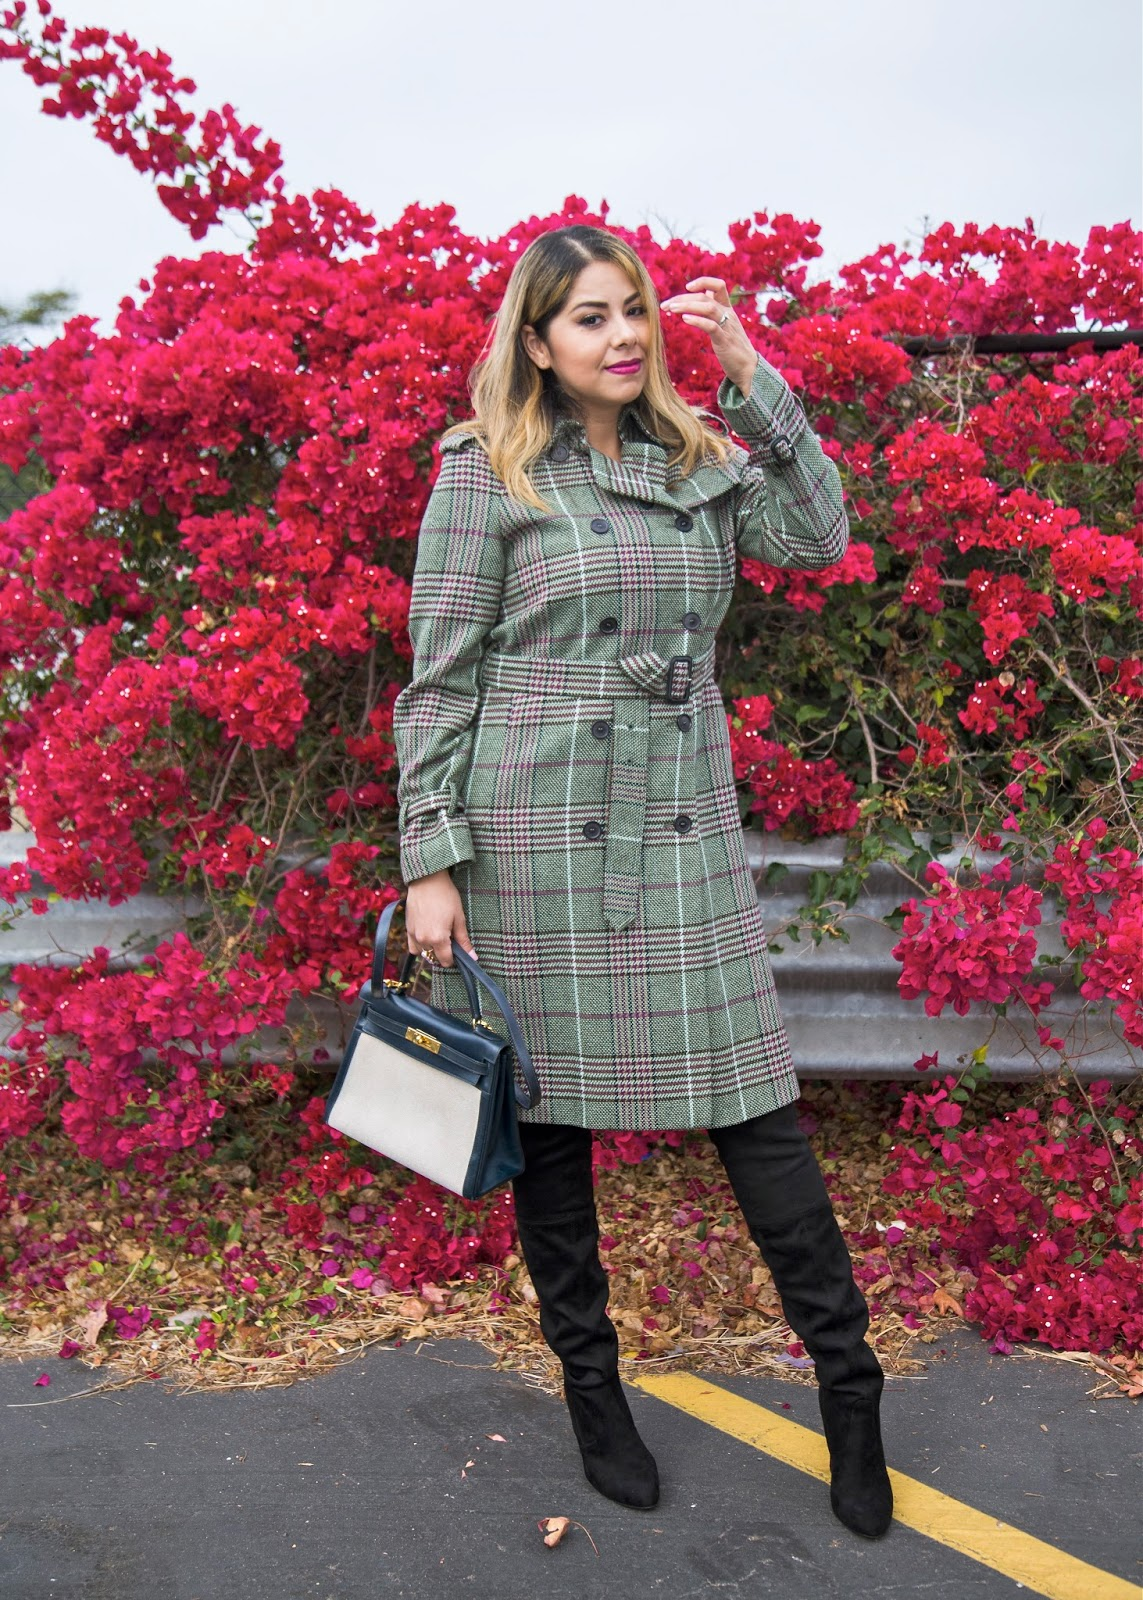 Burberry trench coat outfit, how to wear a burberry trench coat, san diego fashion blogger, san diego consignment stores